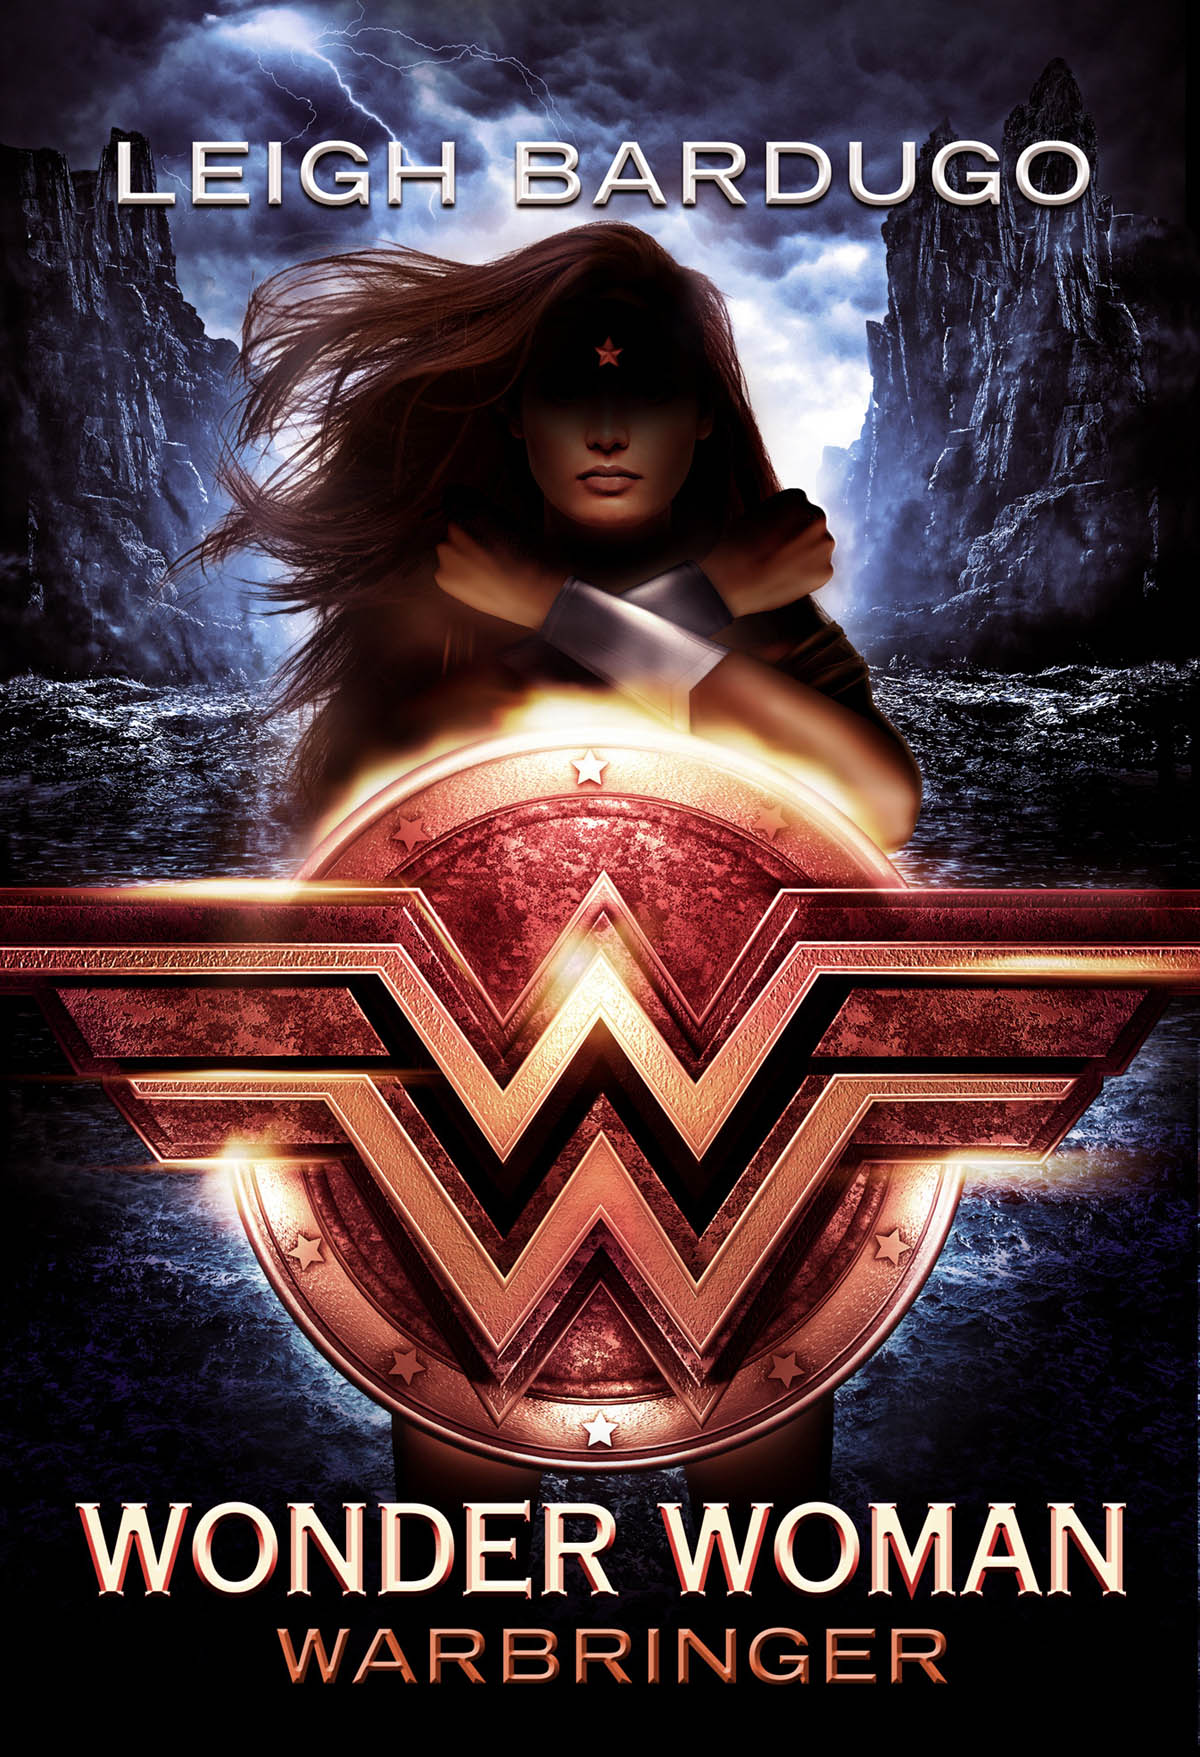 movie poster design scifi cgi wonderwoman